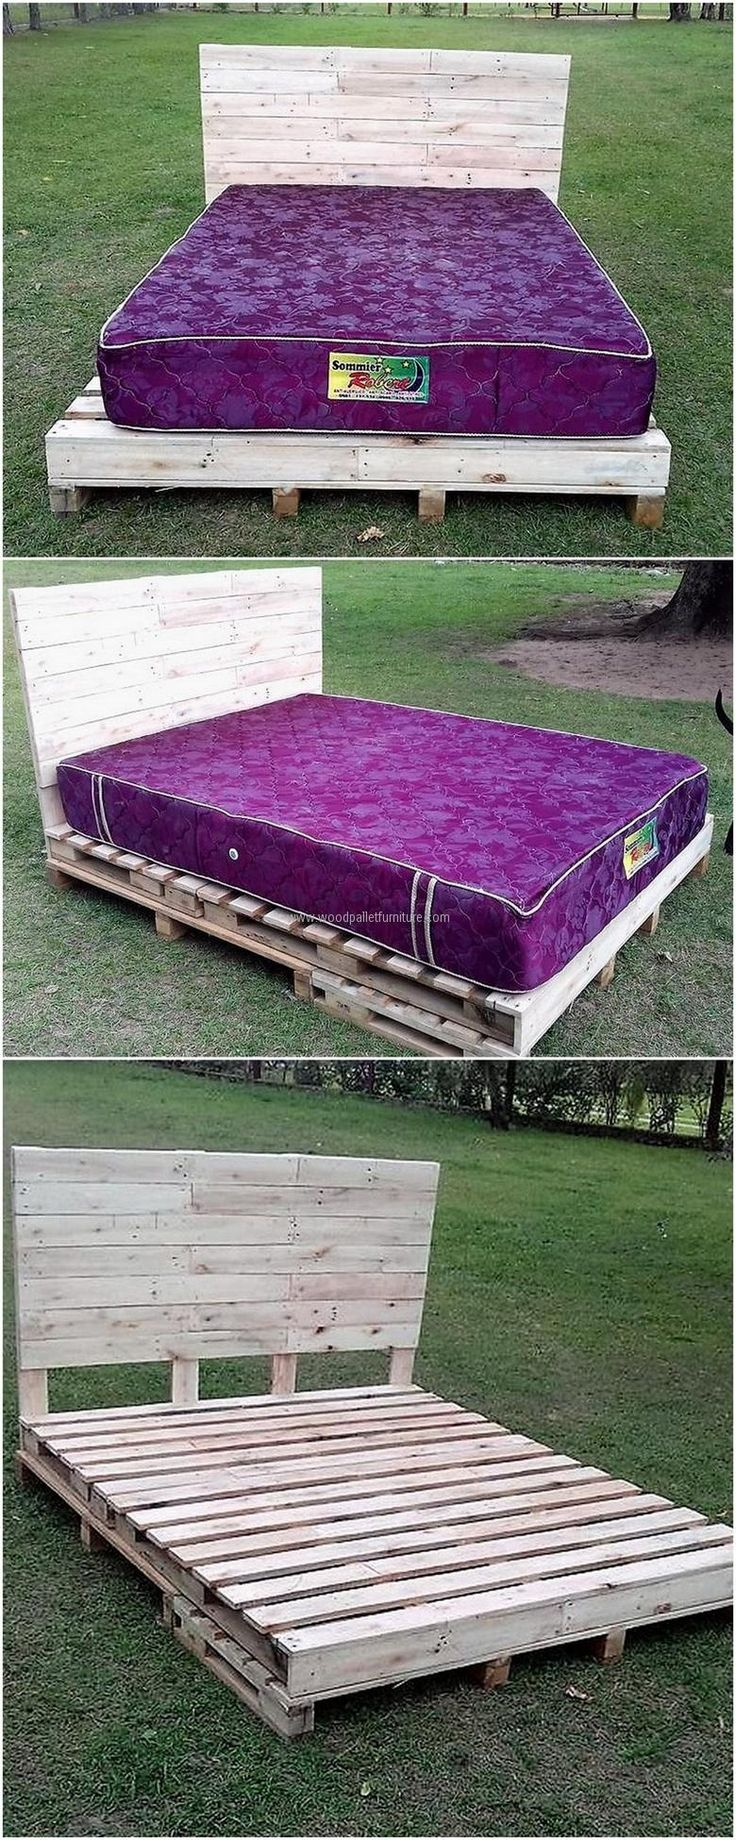 Bed is one of the furniture pieces which areexpensive, but we can solve this issue if someone can't afford to buy a new bed. Take the pallets and reuse them by restyling them into a reclaimed wood pallet bed.